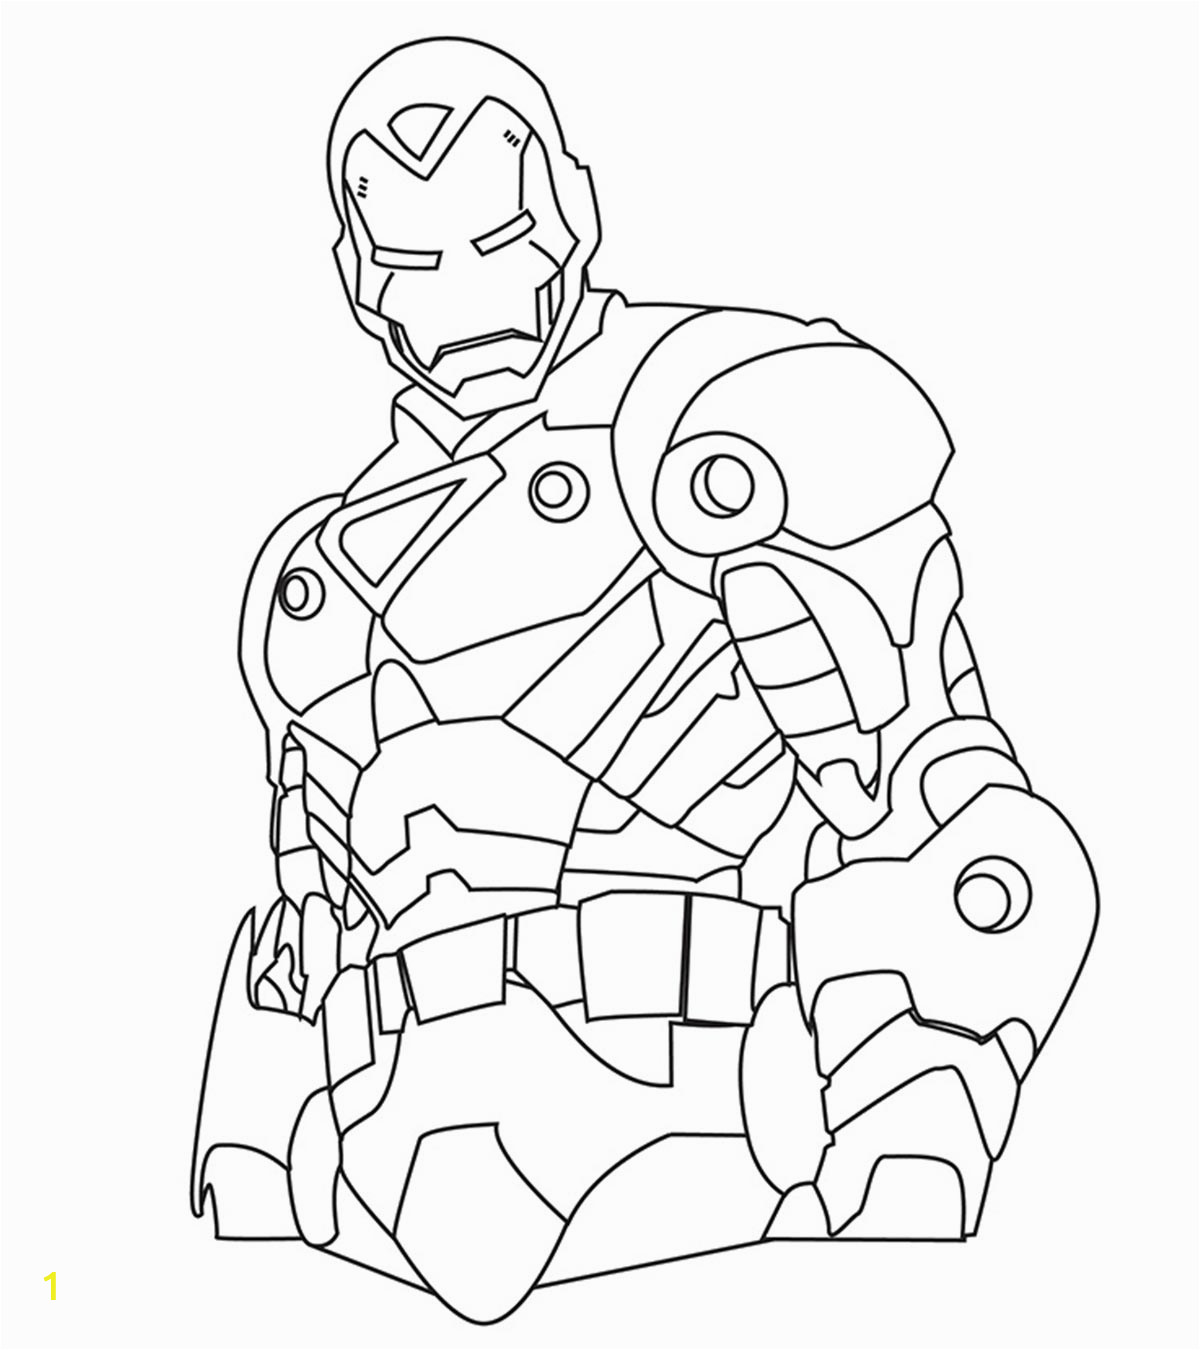 Top 20 Iron Man Coloring Pages You Toddler Will Love 1